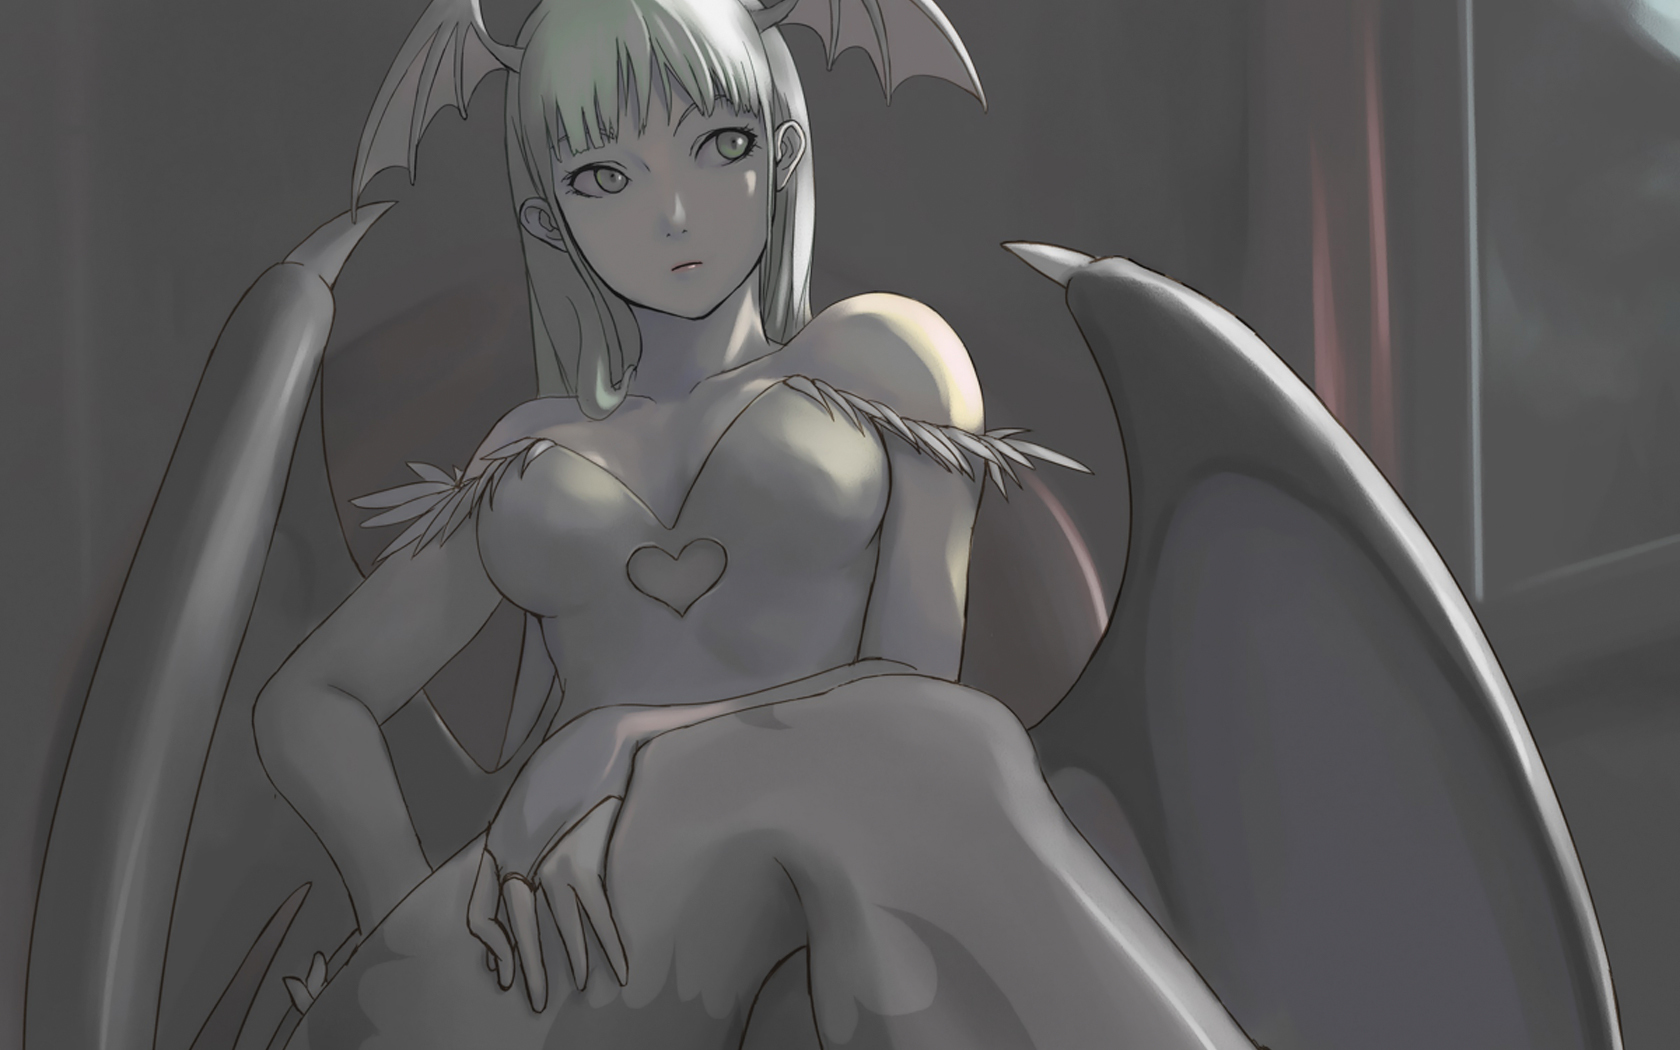 Morrigan Aensland anime girls HD Wallpaper